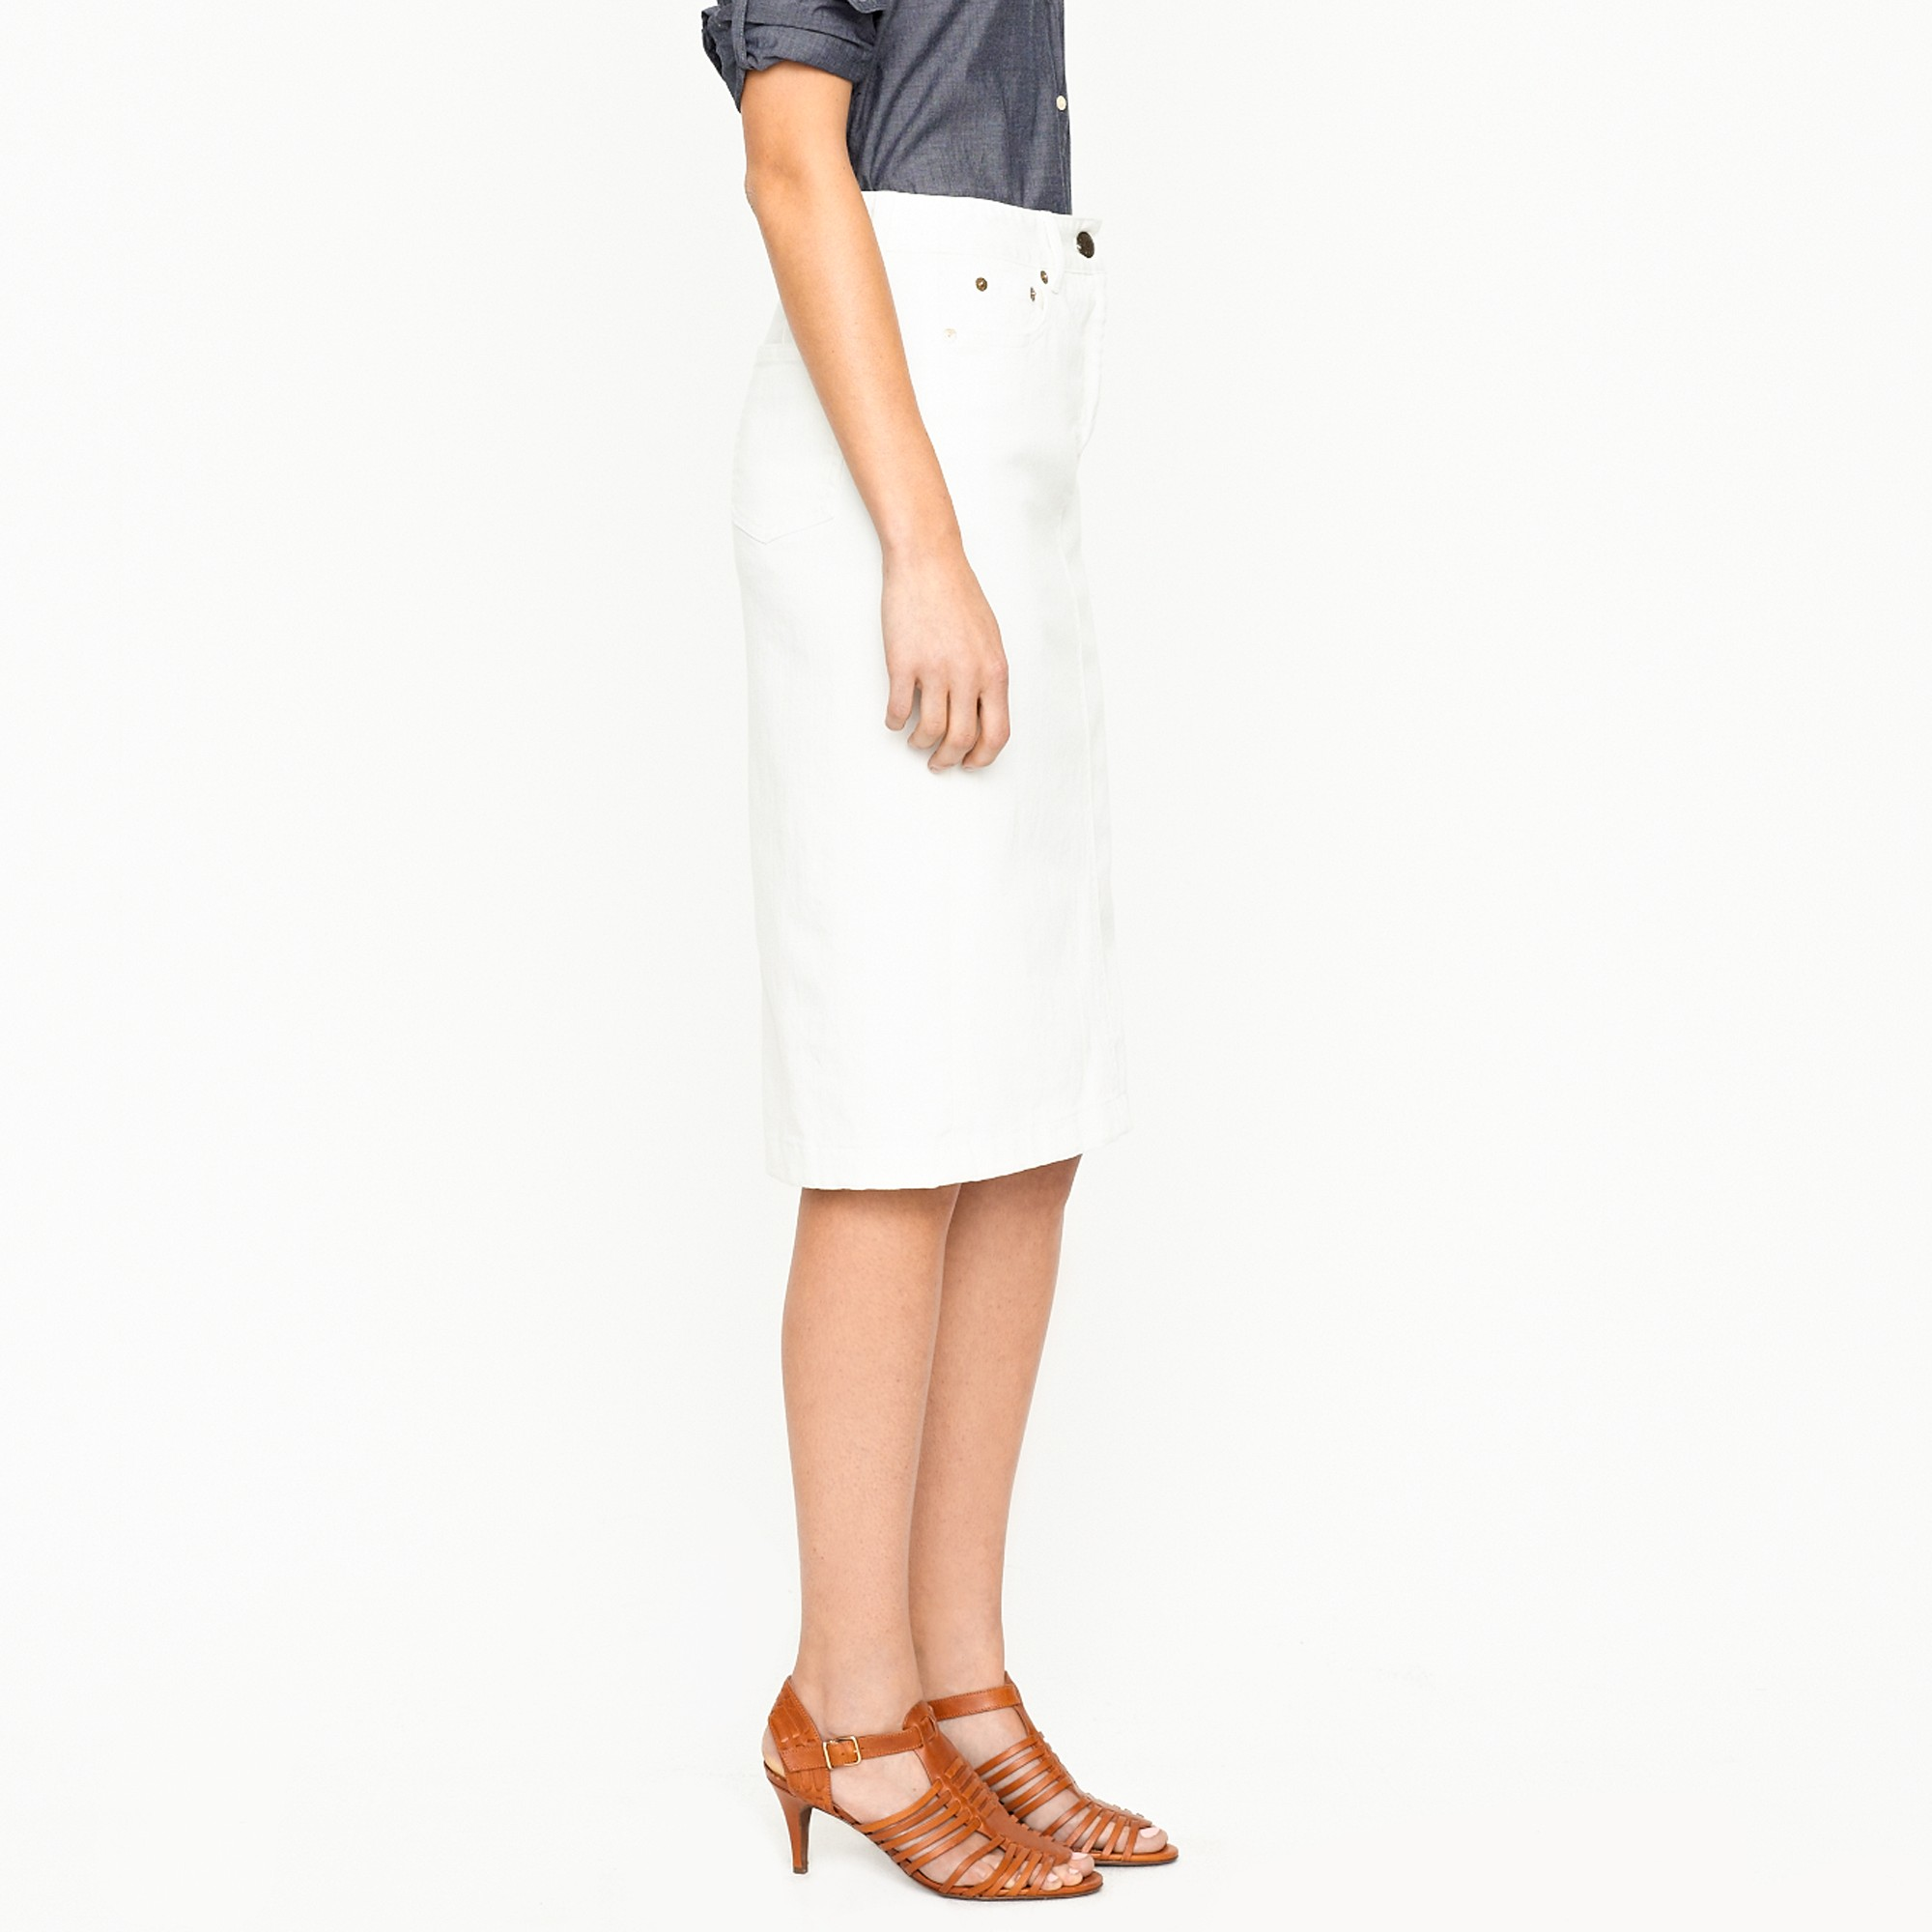 J.crew High-waisted Denim Pencil Skirt in Sunwhite Wash in ...